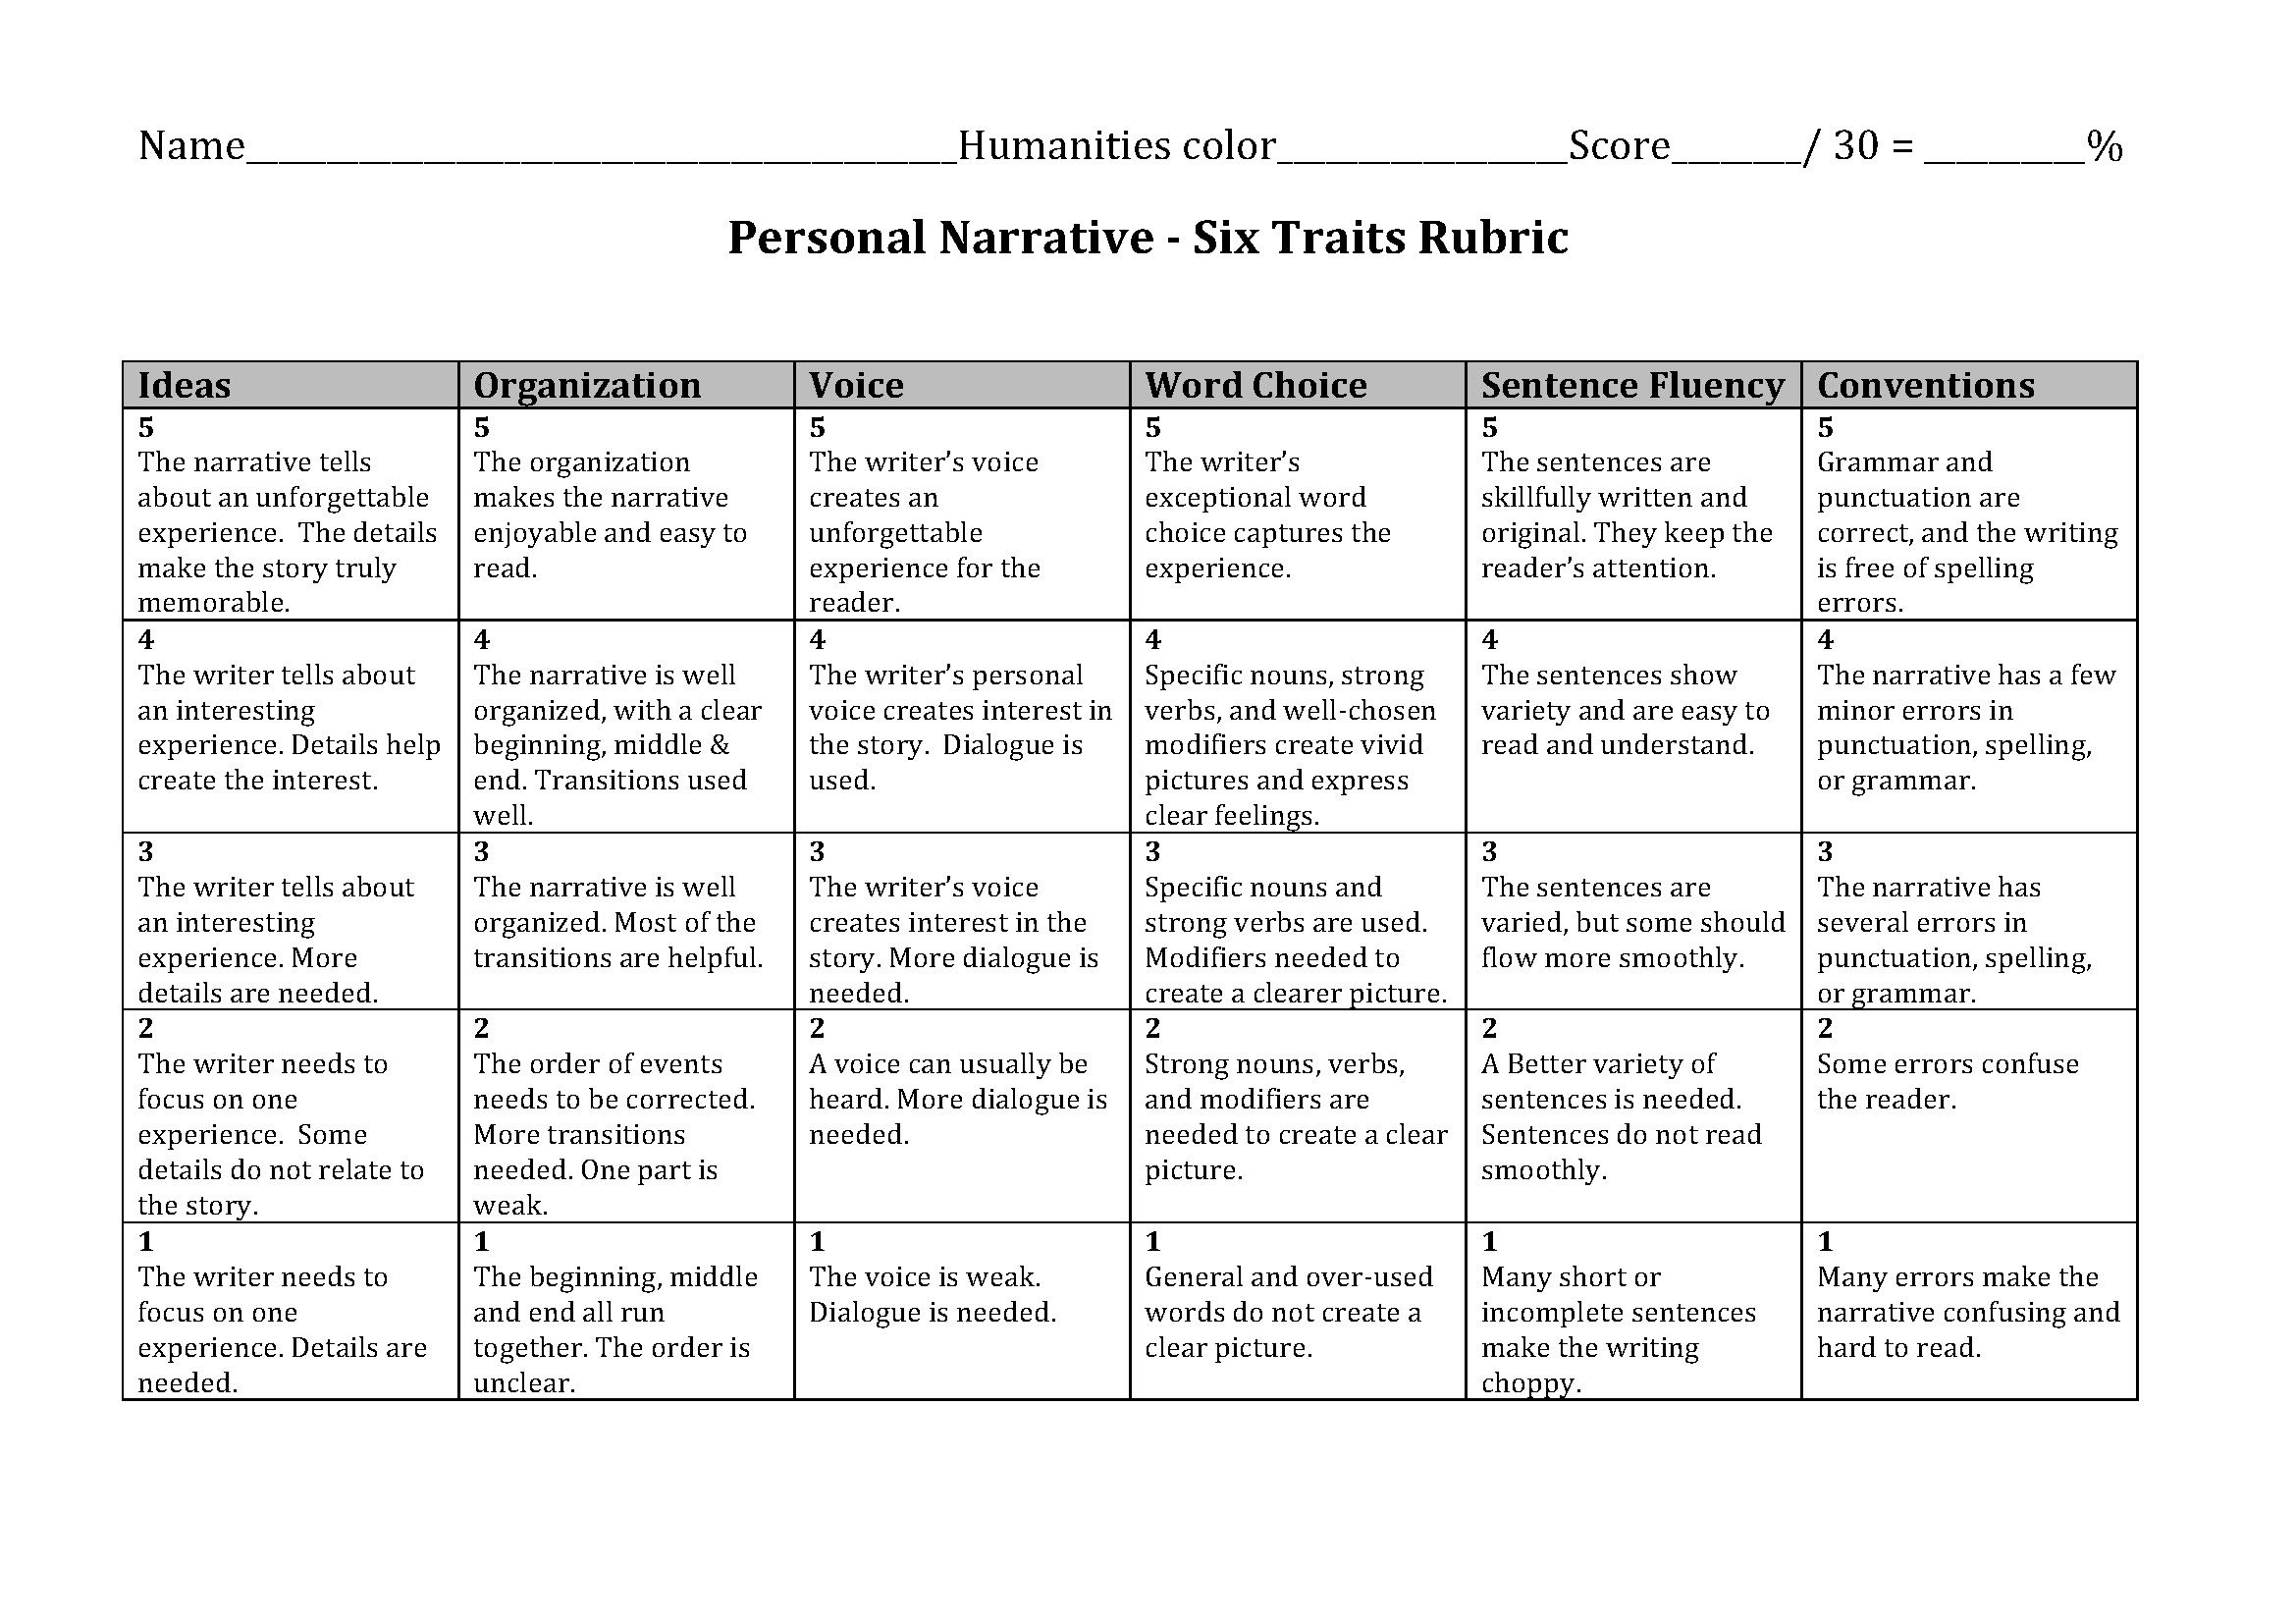 rubric for narrative writing This is a neat narrative rubric it includes images so students have an easier time understanding it i also like how important words are bolded personal narrative rubric this rubric will.